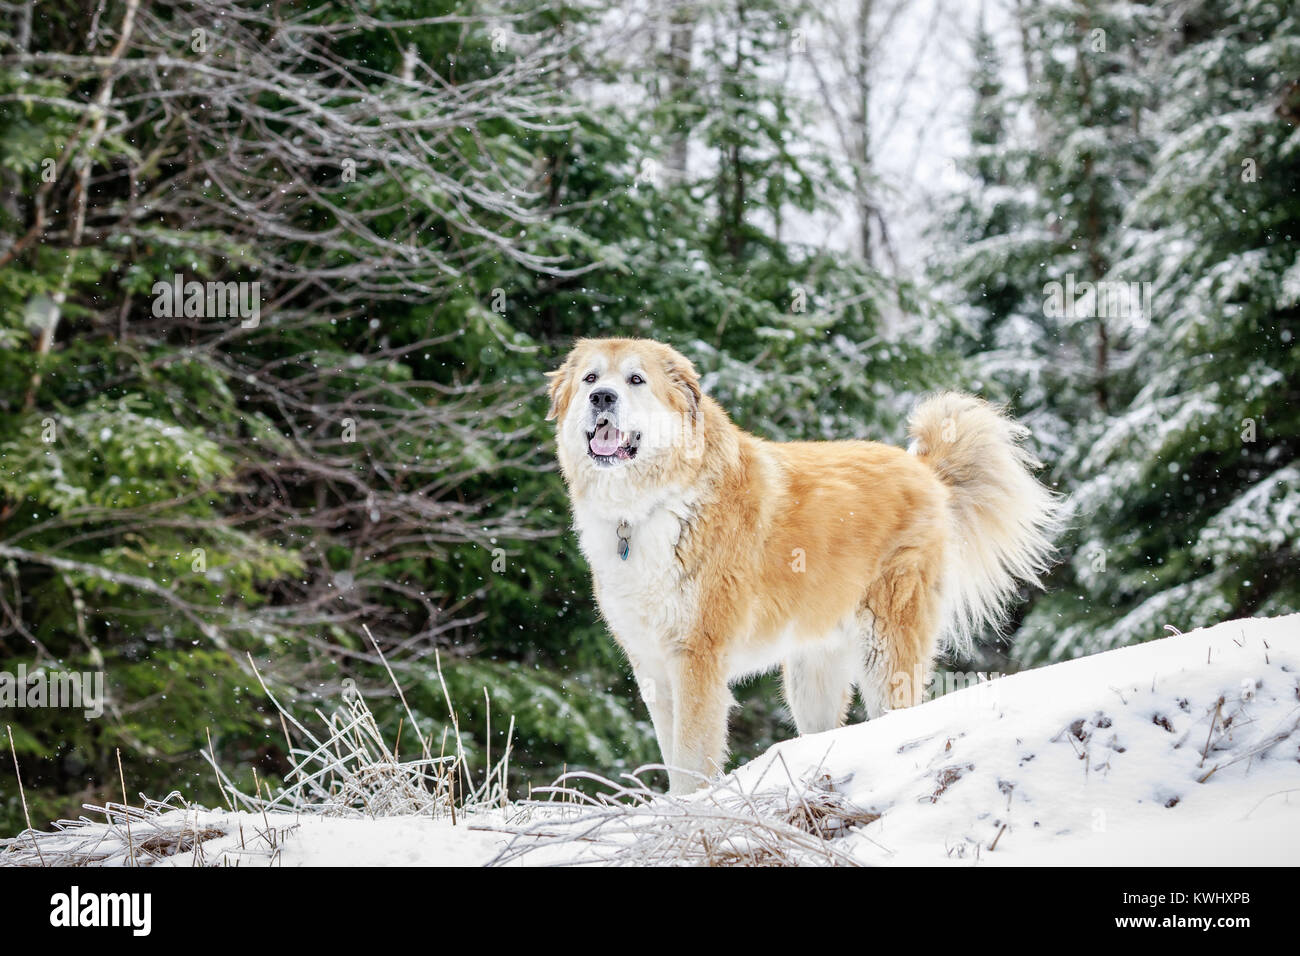 Large mixed breed dog on a winter day, Ontario, Canada. - Stock Image